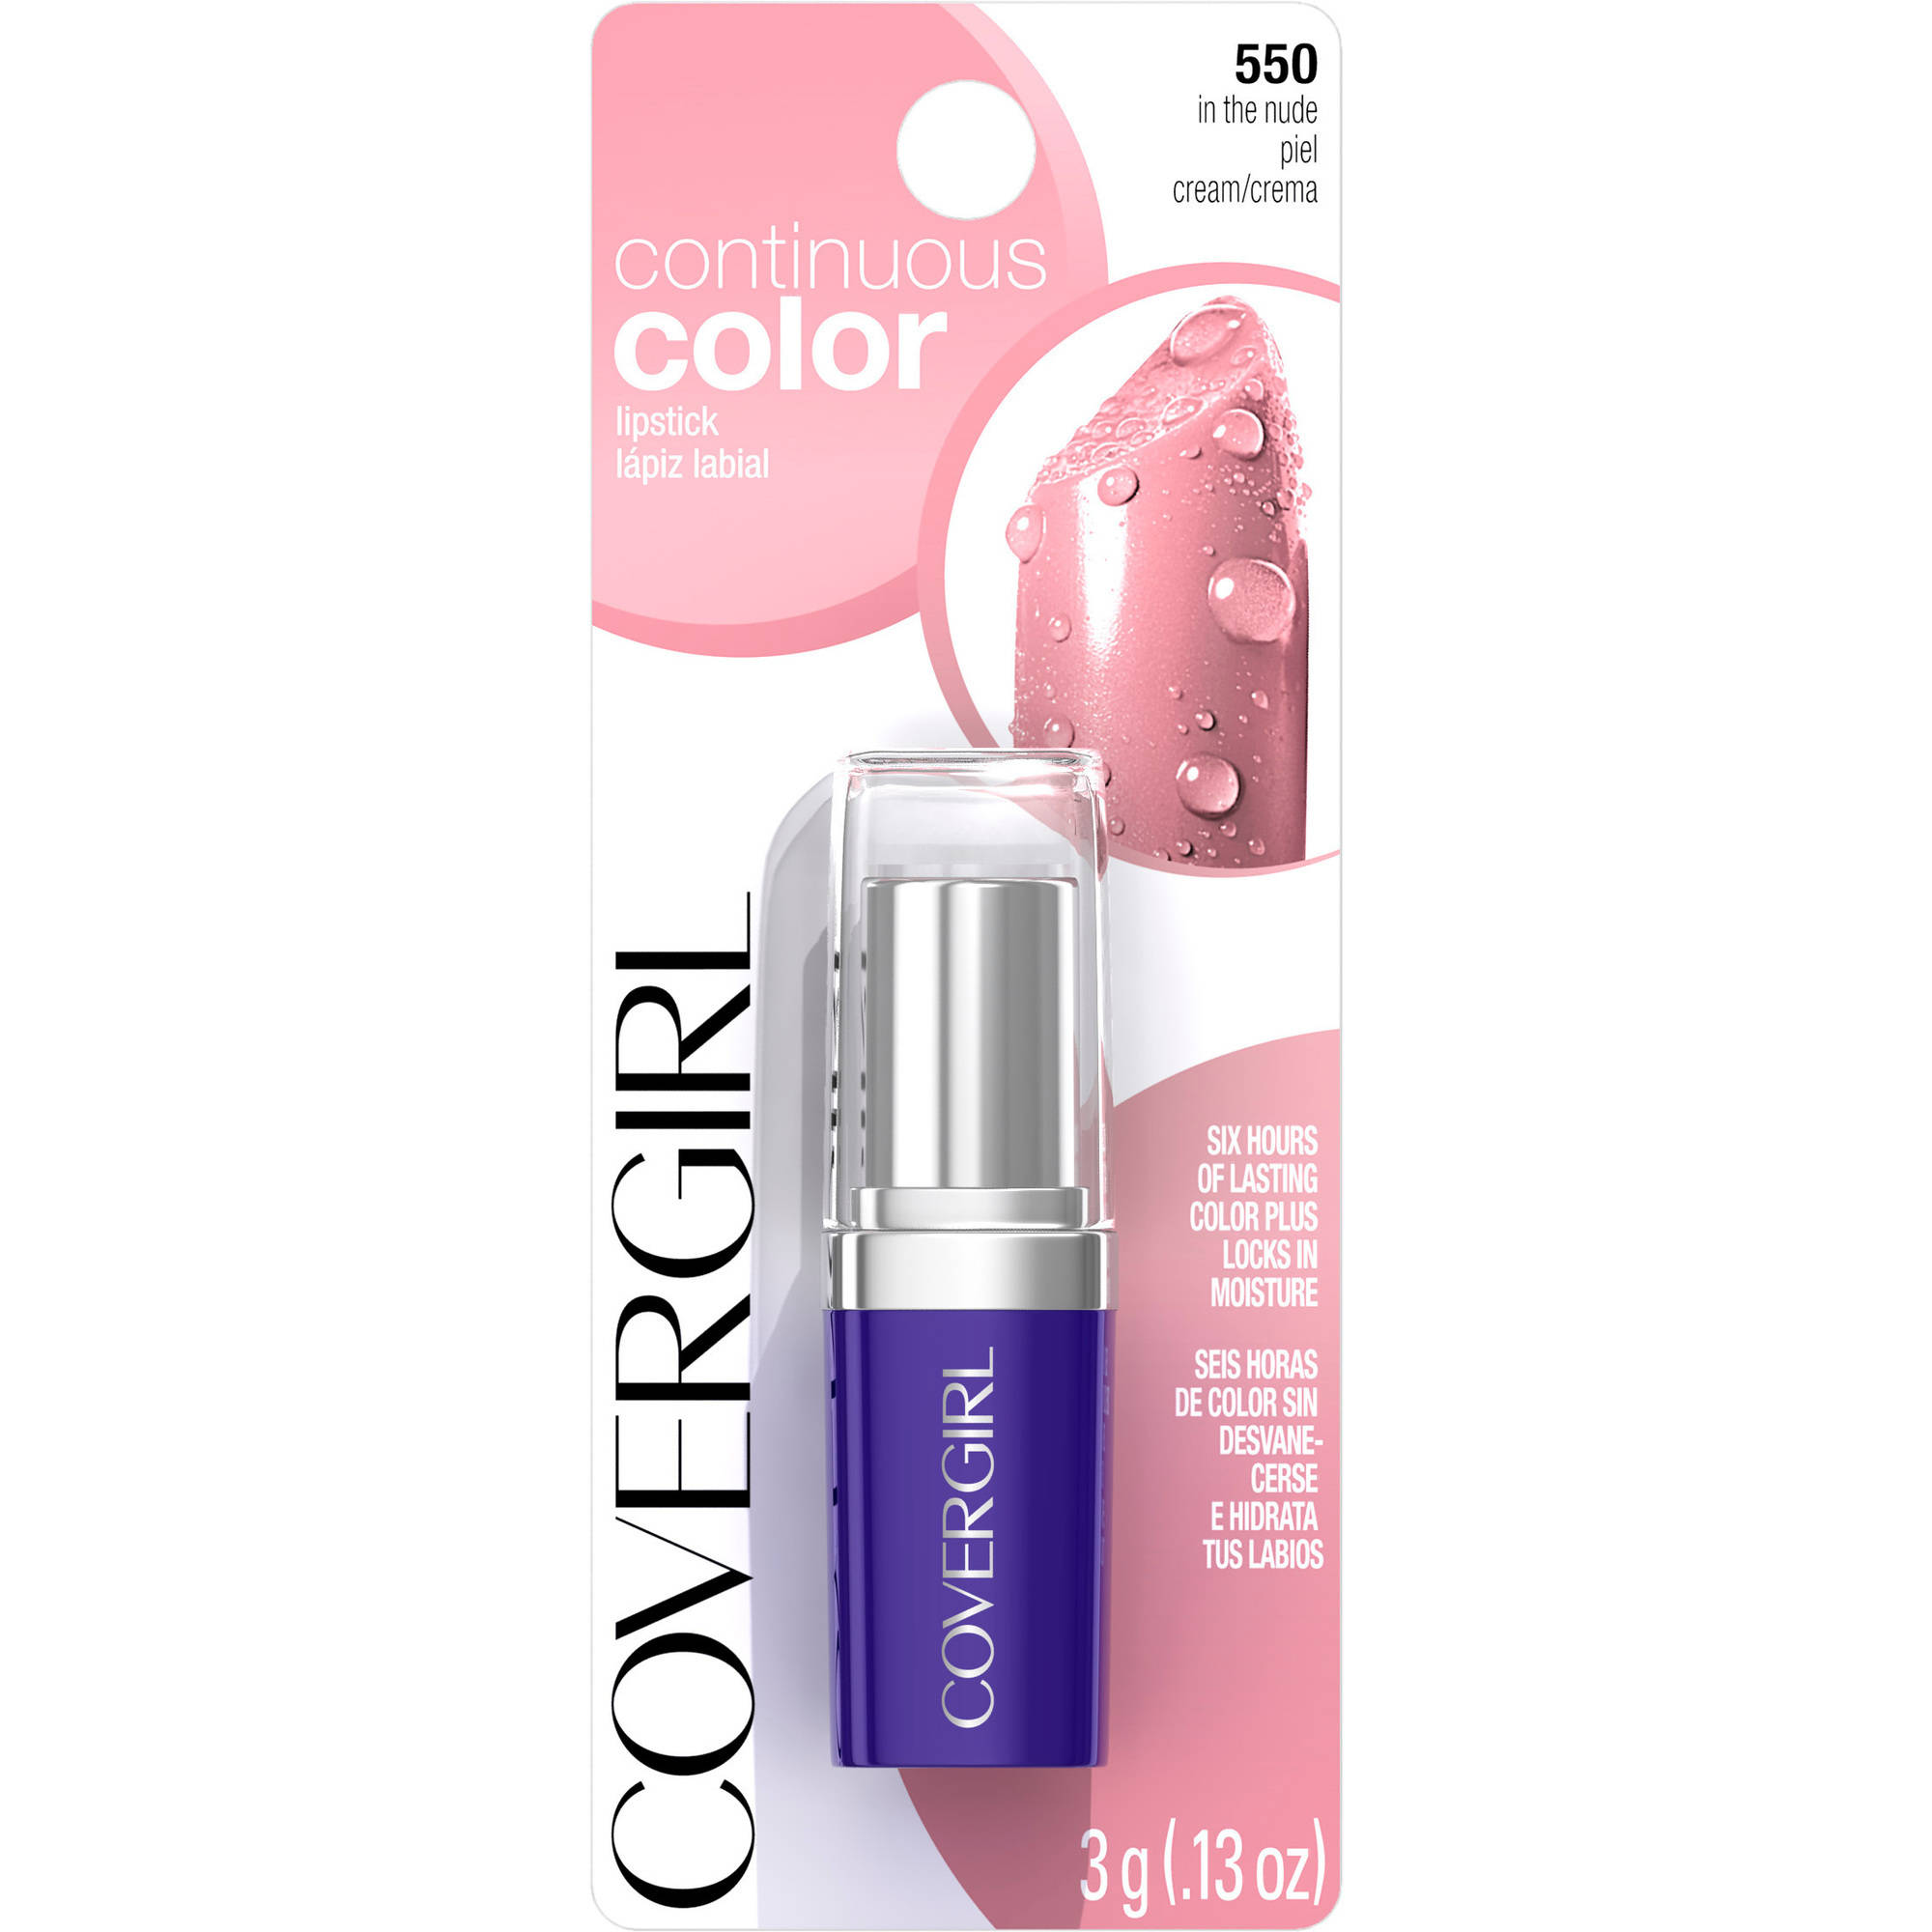 COVERGIRL Continuous Color Lipstick, 825 In the Nude, 0.13 oz